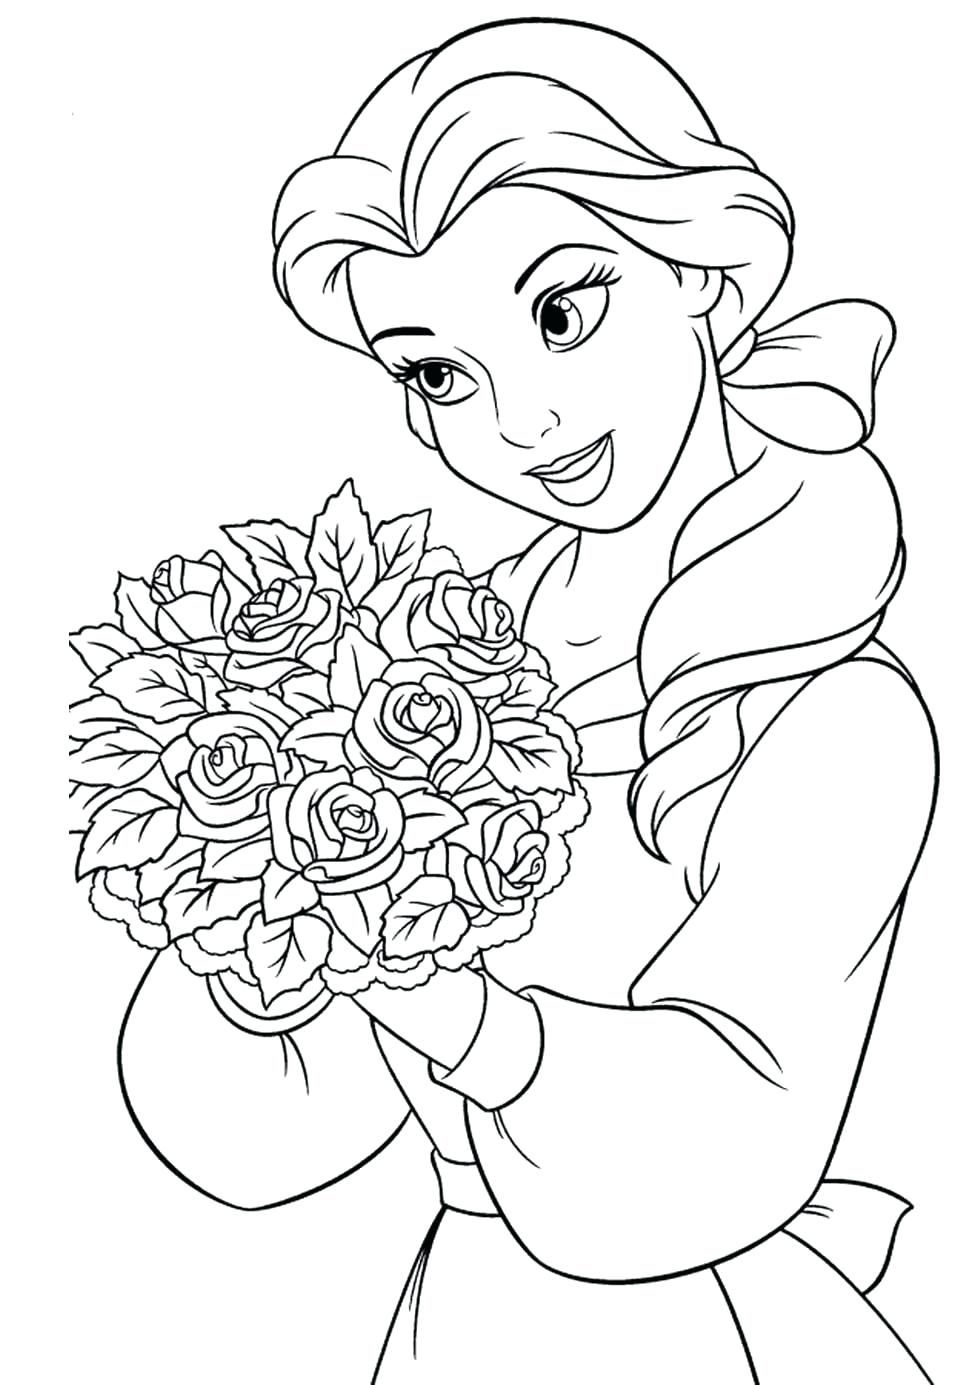 Floral Coloring Pages Coloring Pages Cute Flower Coloring Pages